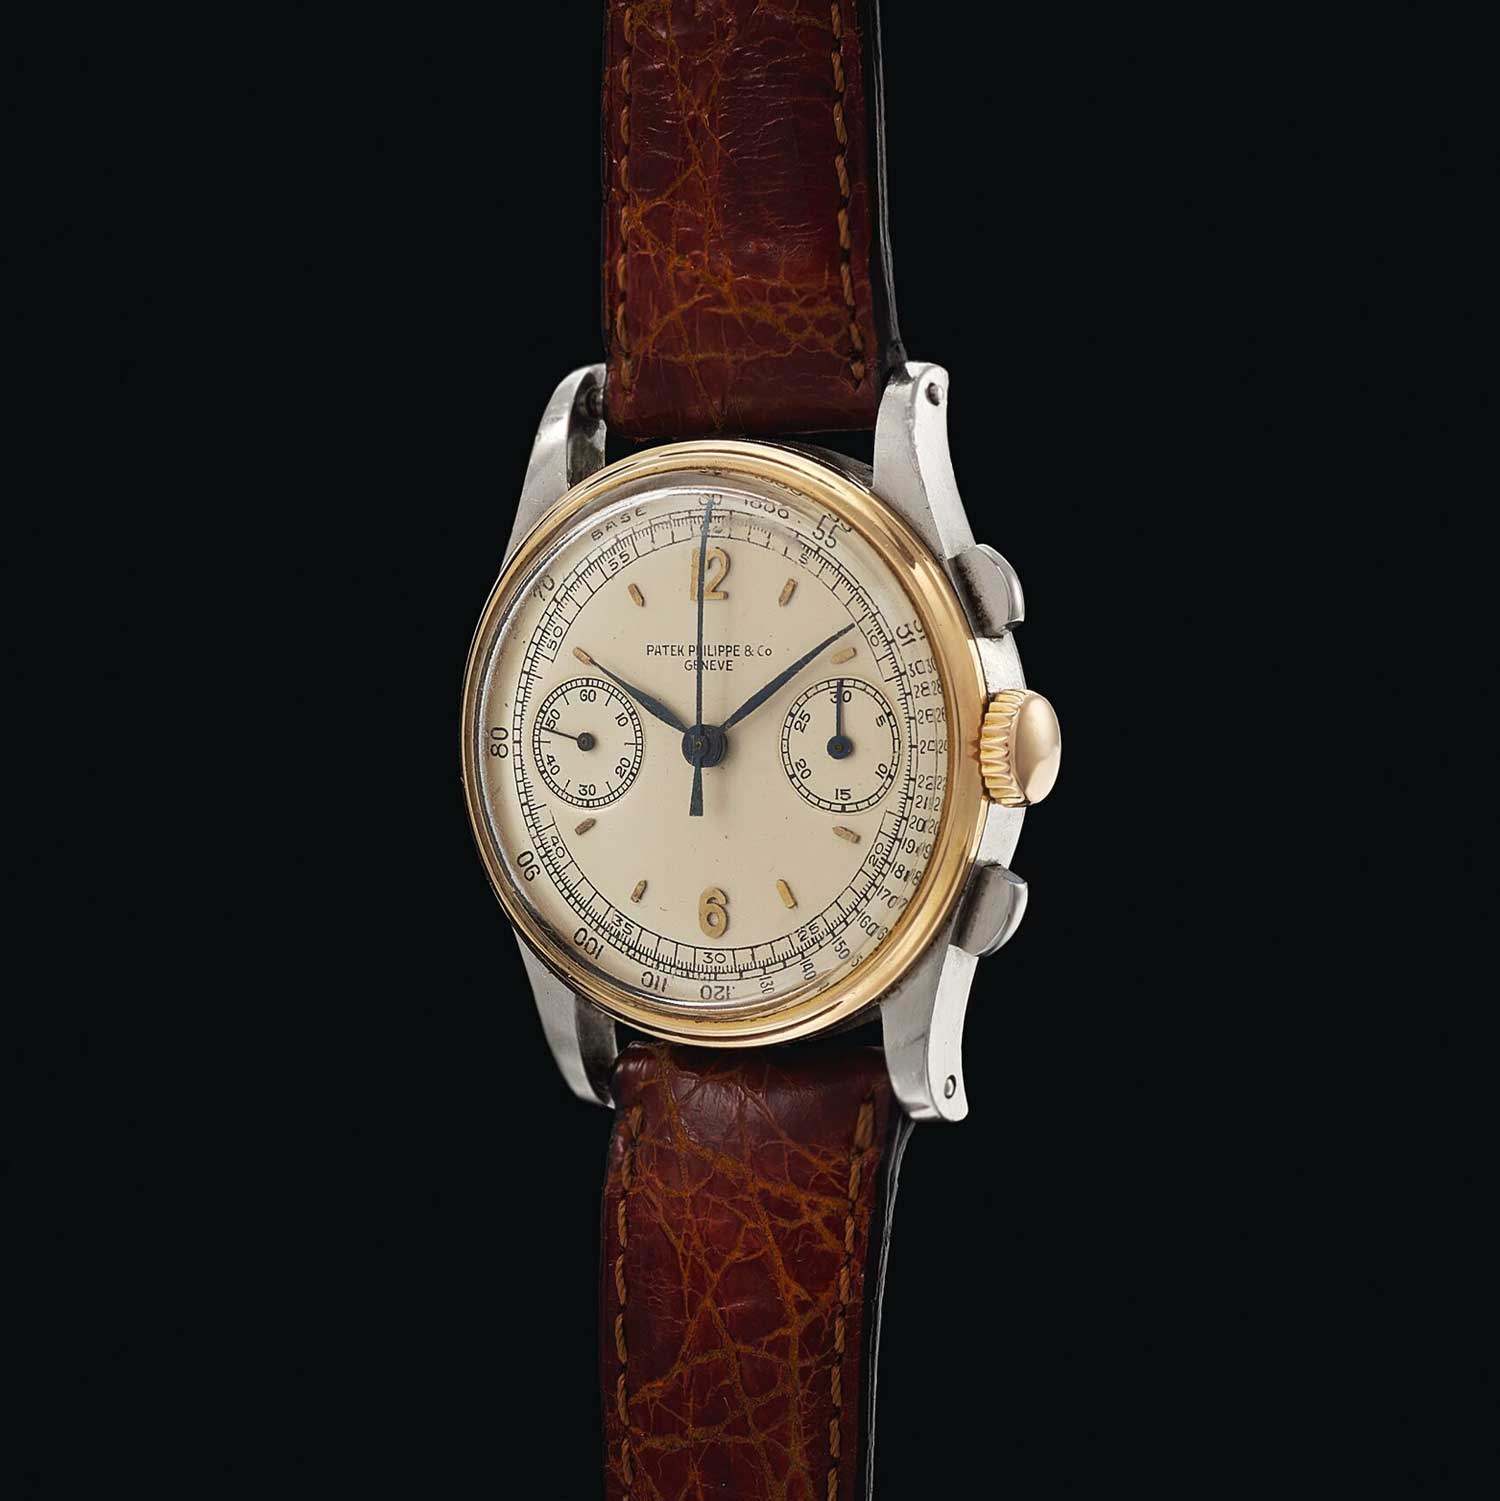 1941 Patek Philippe chronograph ref. 130 in steel and gold with Arabic numerals (Image: Sothebys.com)